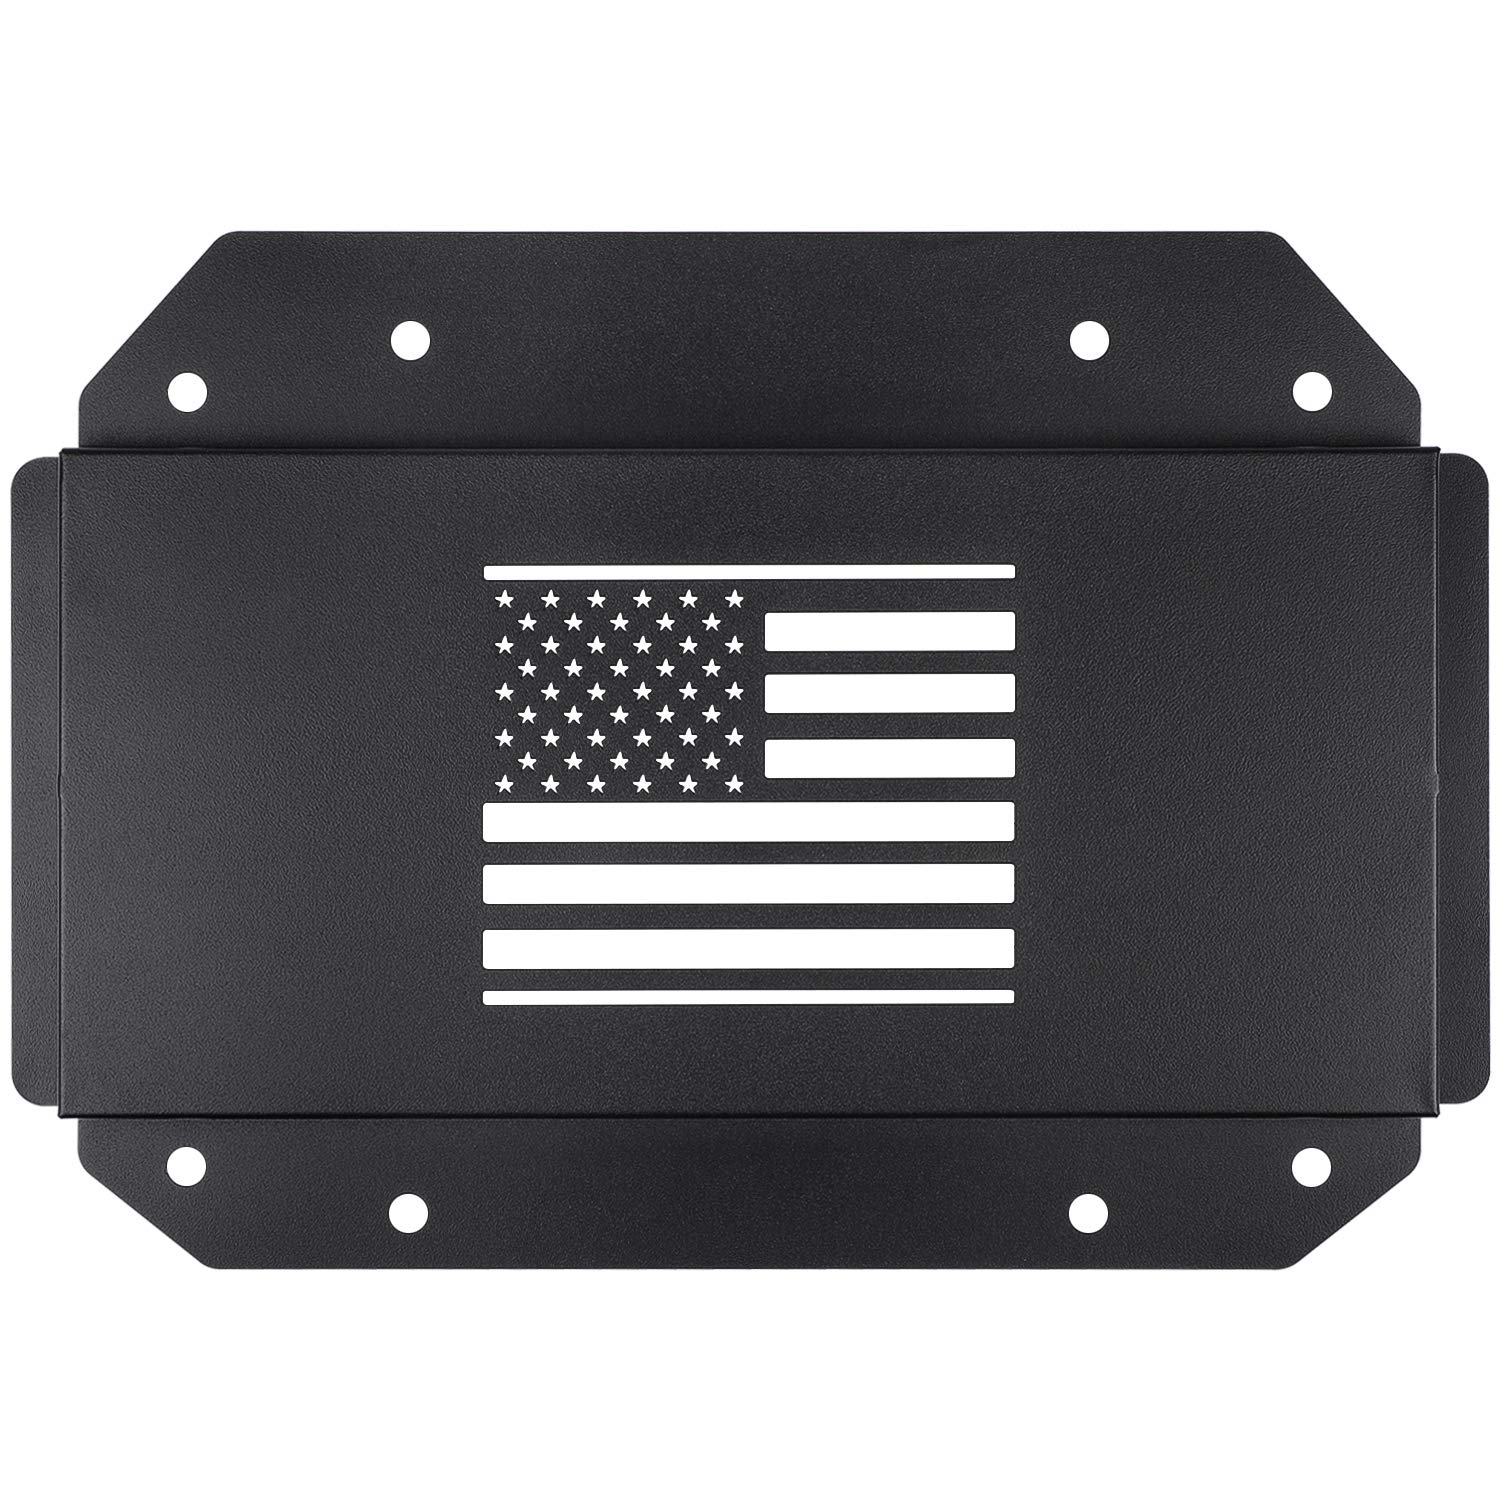 Danti Jeep Wrangler Tailgate Vent-Plate Cover for 2018 2019 Jeep Wrangler JL Spare tire Tramp Stamp tire Carrier Delete mild Steel Trim with US Flag wen wen top